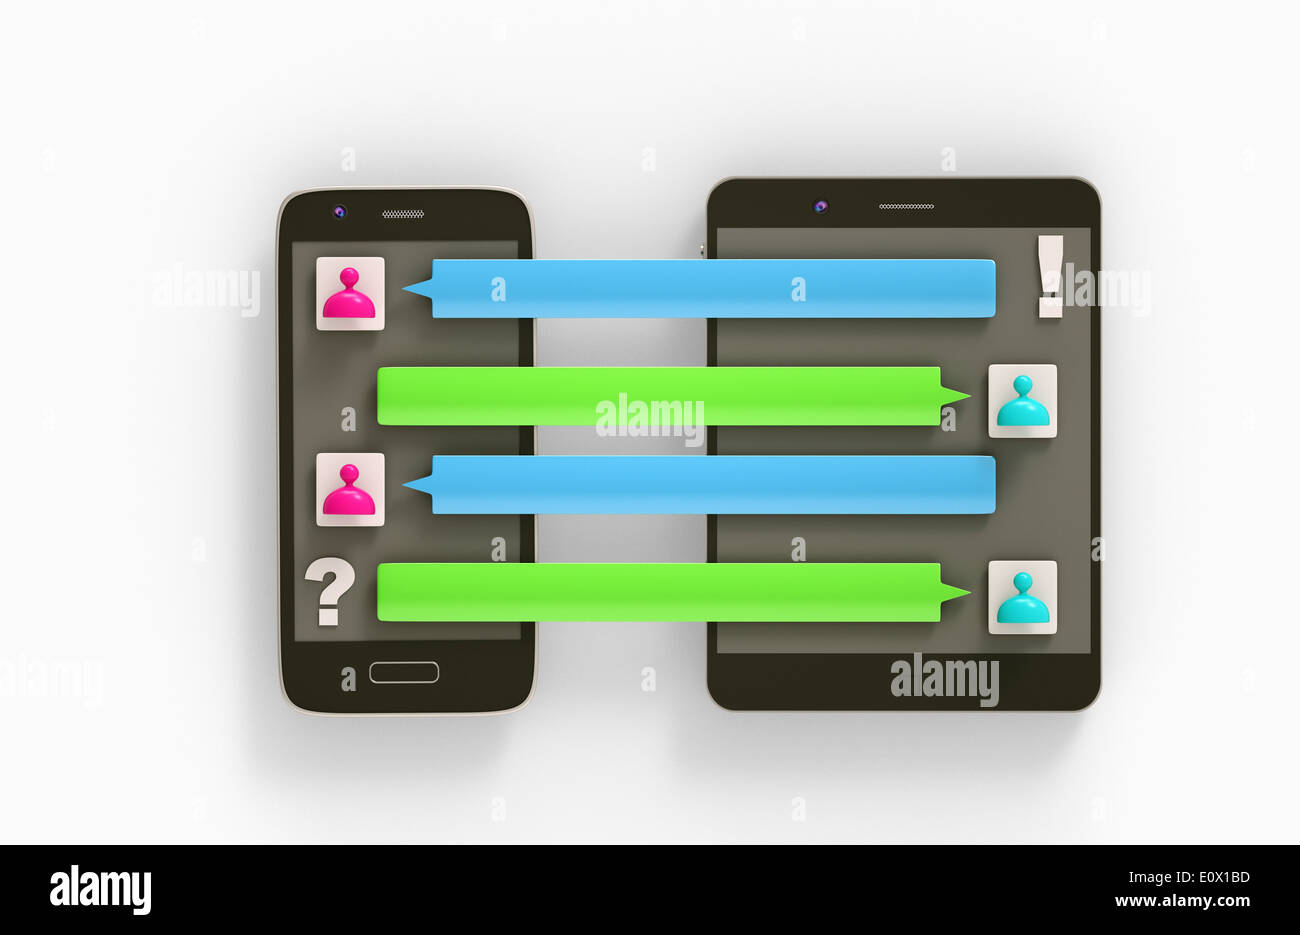 a message log connecting two devices Stock Photo: 69413329